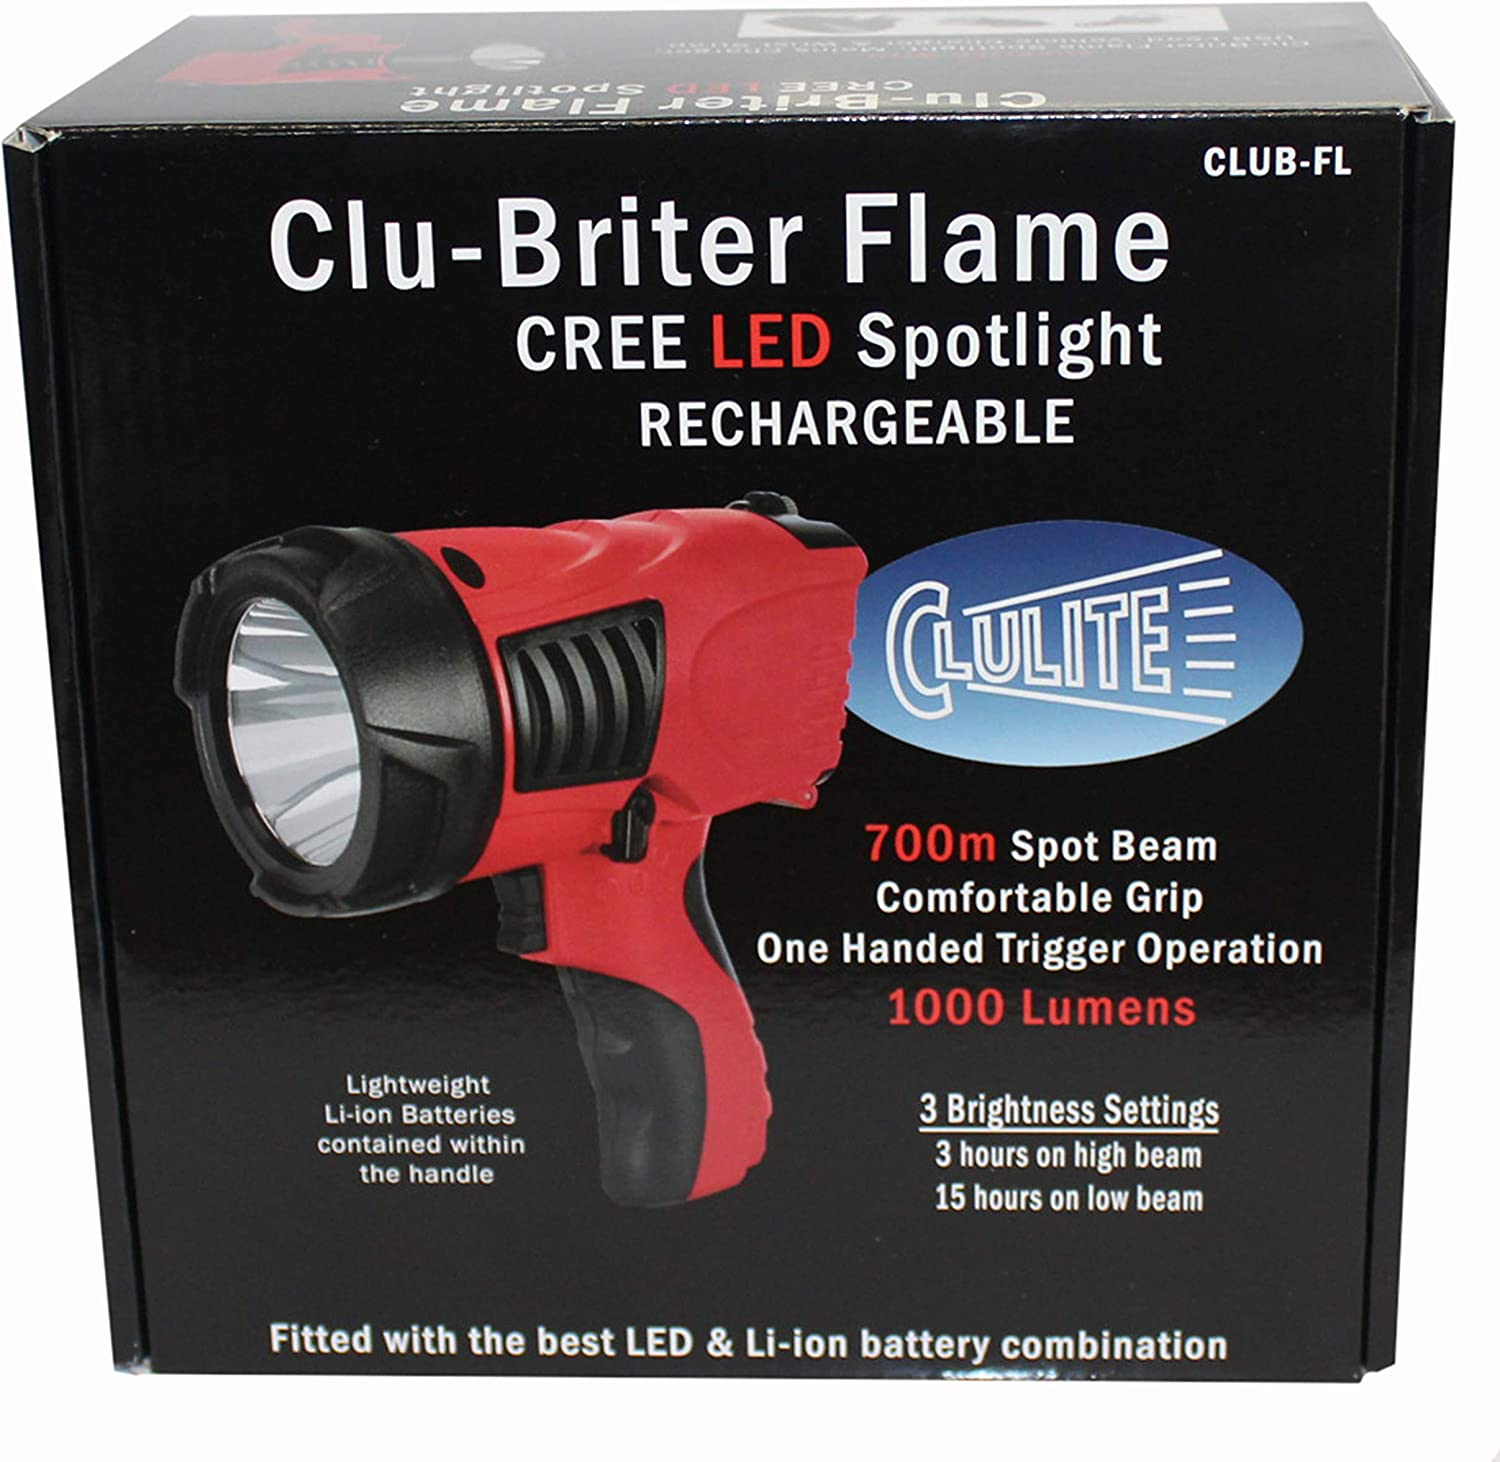 Clulite Clu-Briter FLAME 1000 Lumen 700m LED USB /& Car Rechargeable Torch